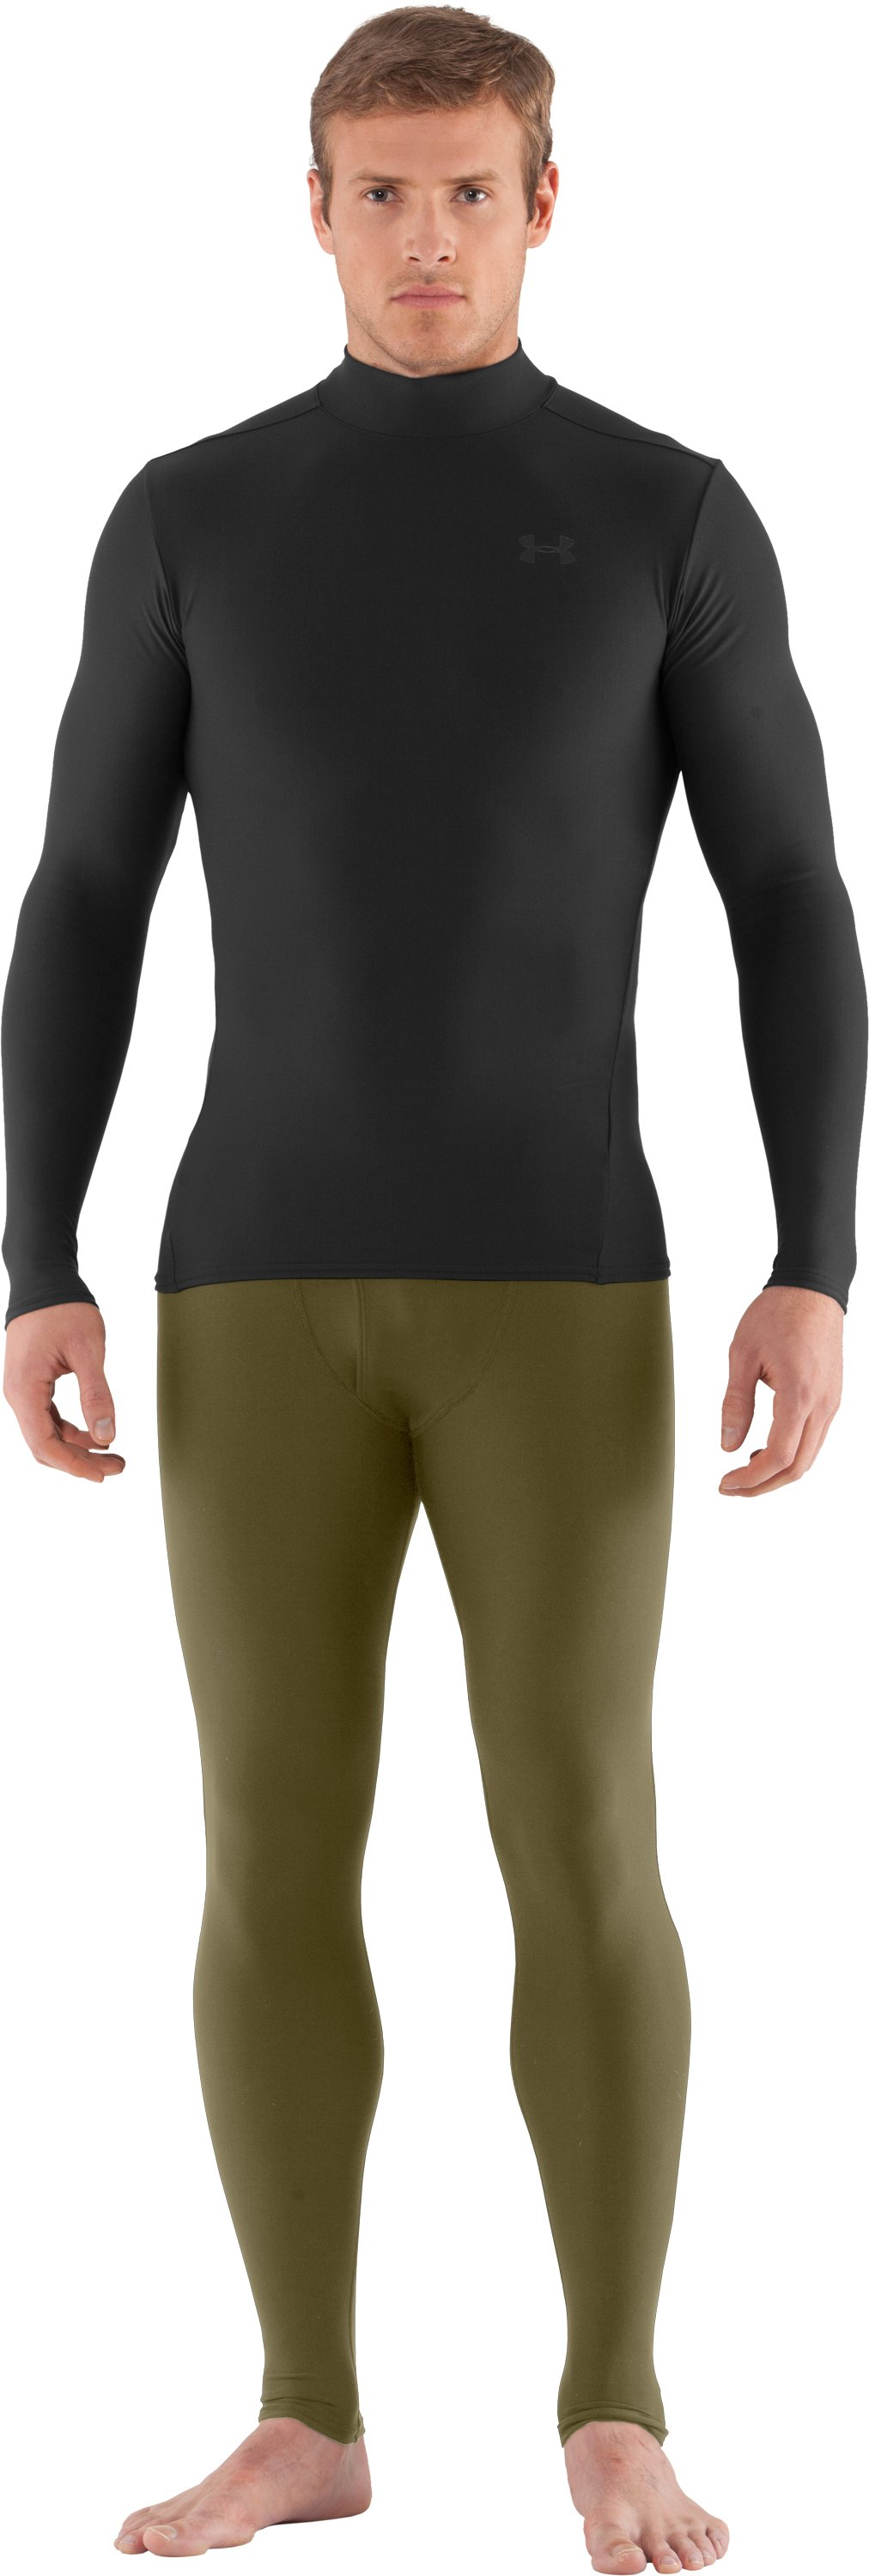 Men's Tactical ColdGear® Compression Leggings, Marine OD Green